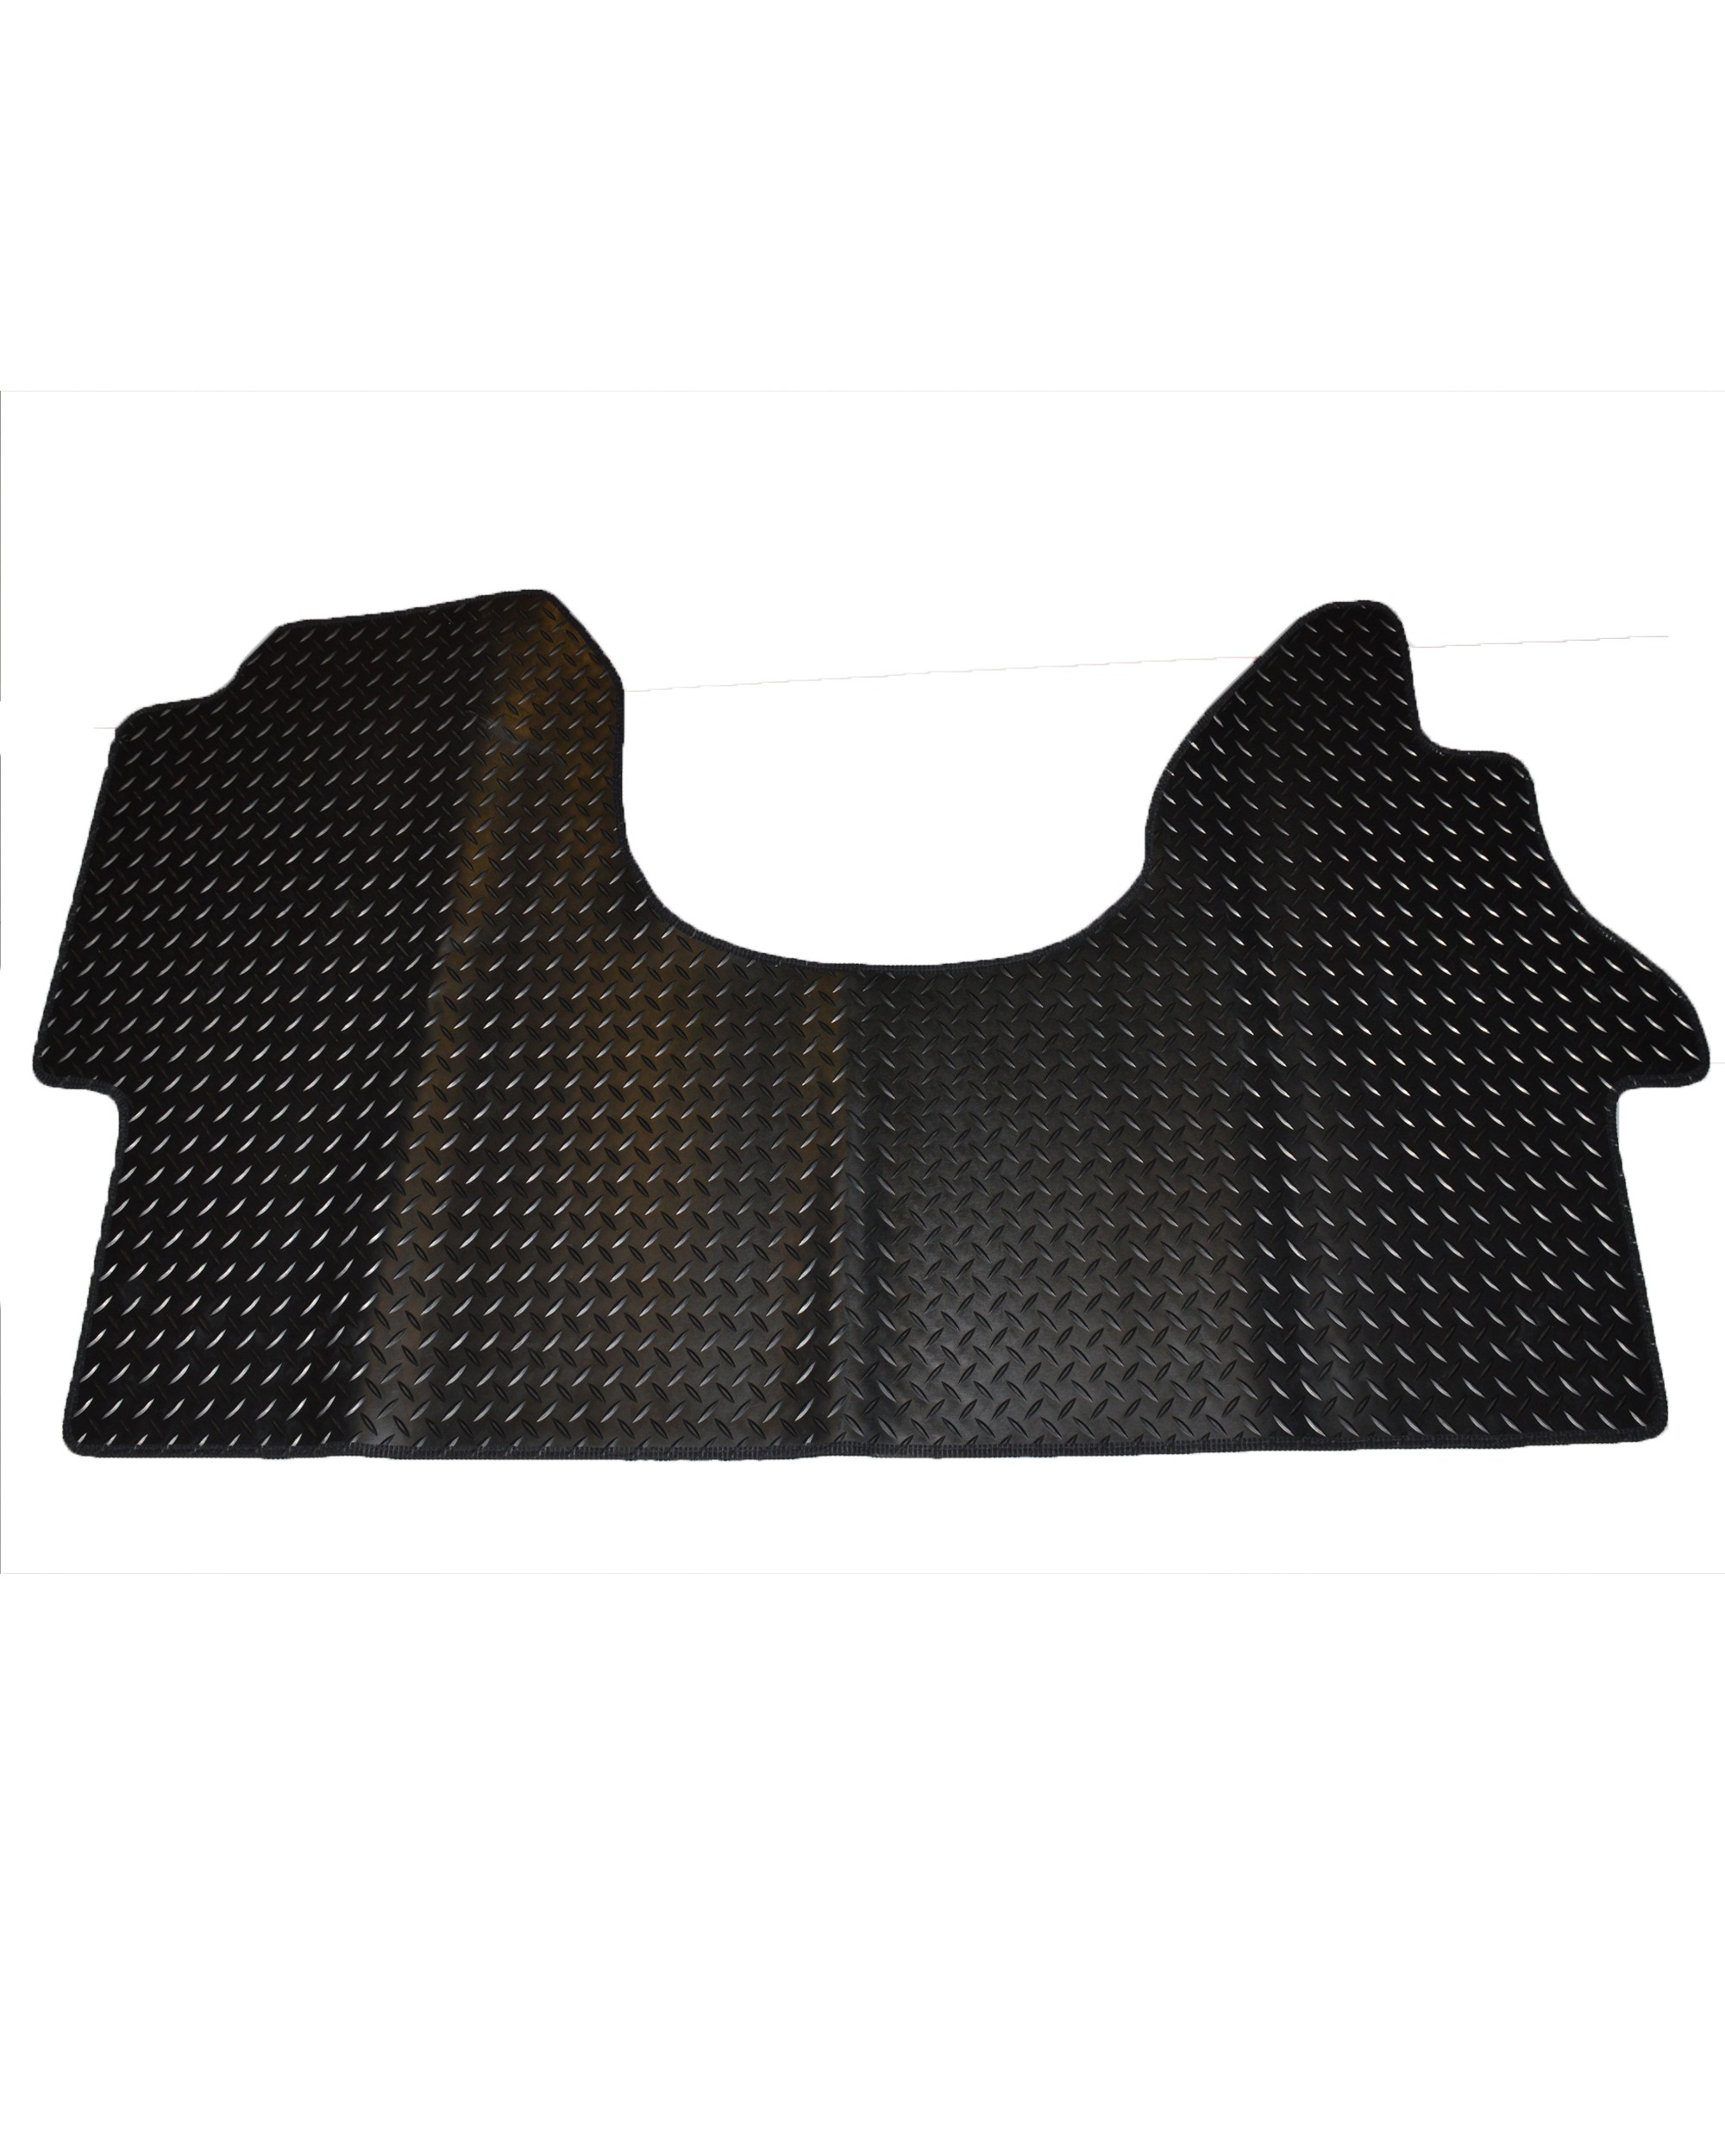 VW Crafter (2006-2016) Coverall Heavy Duty Rubber Mats